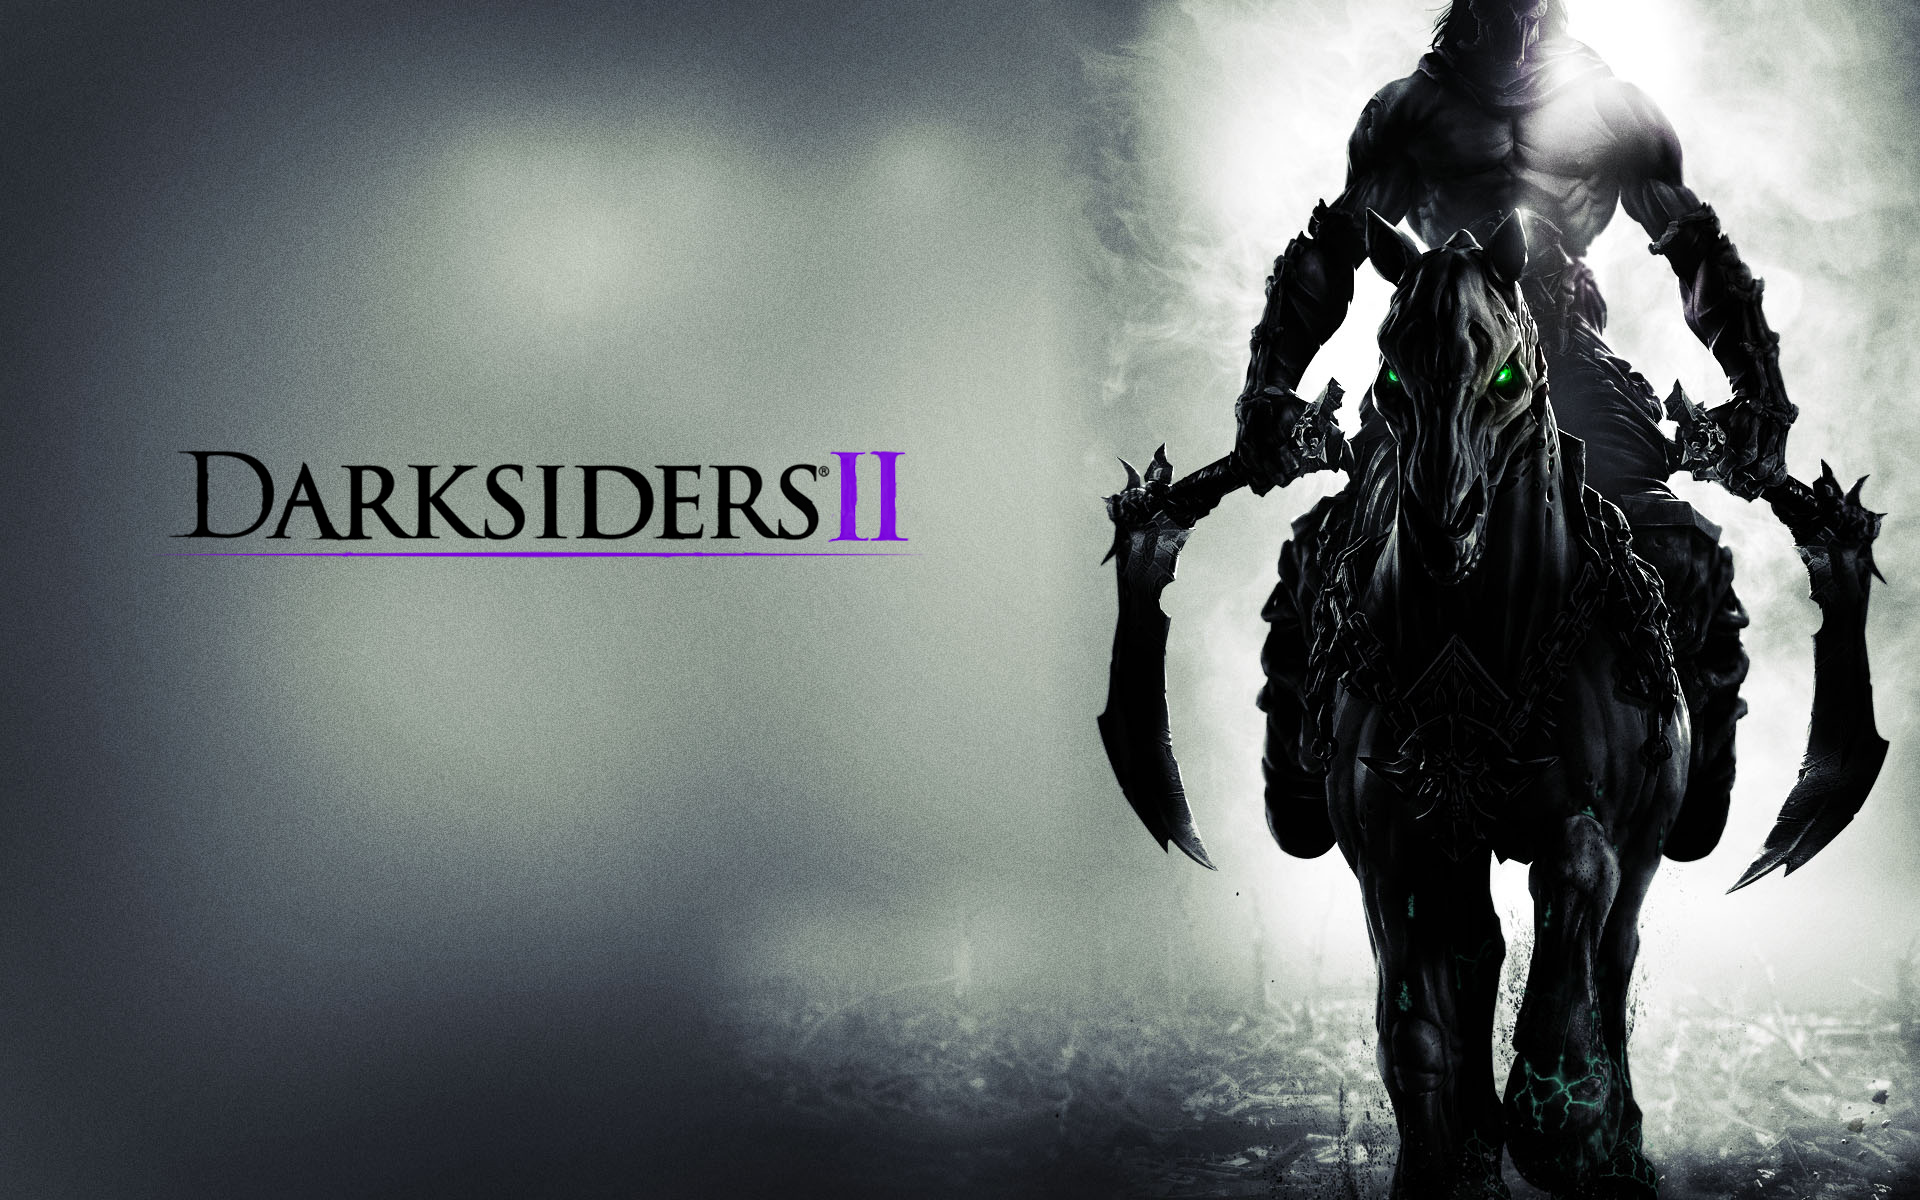 Darksiders 2 Death wallpaper 1920x1200